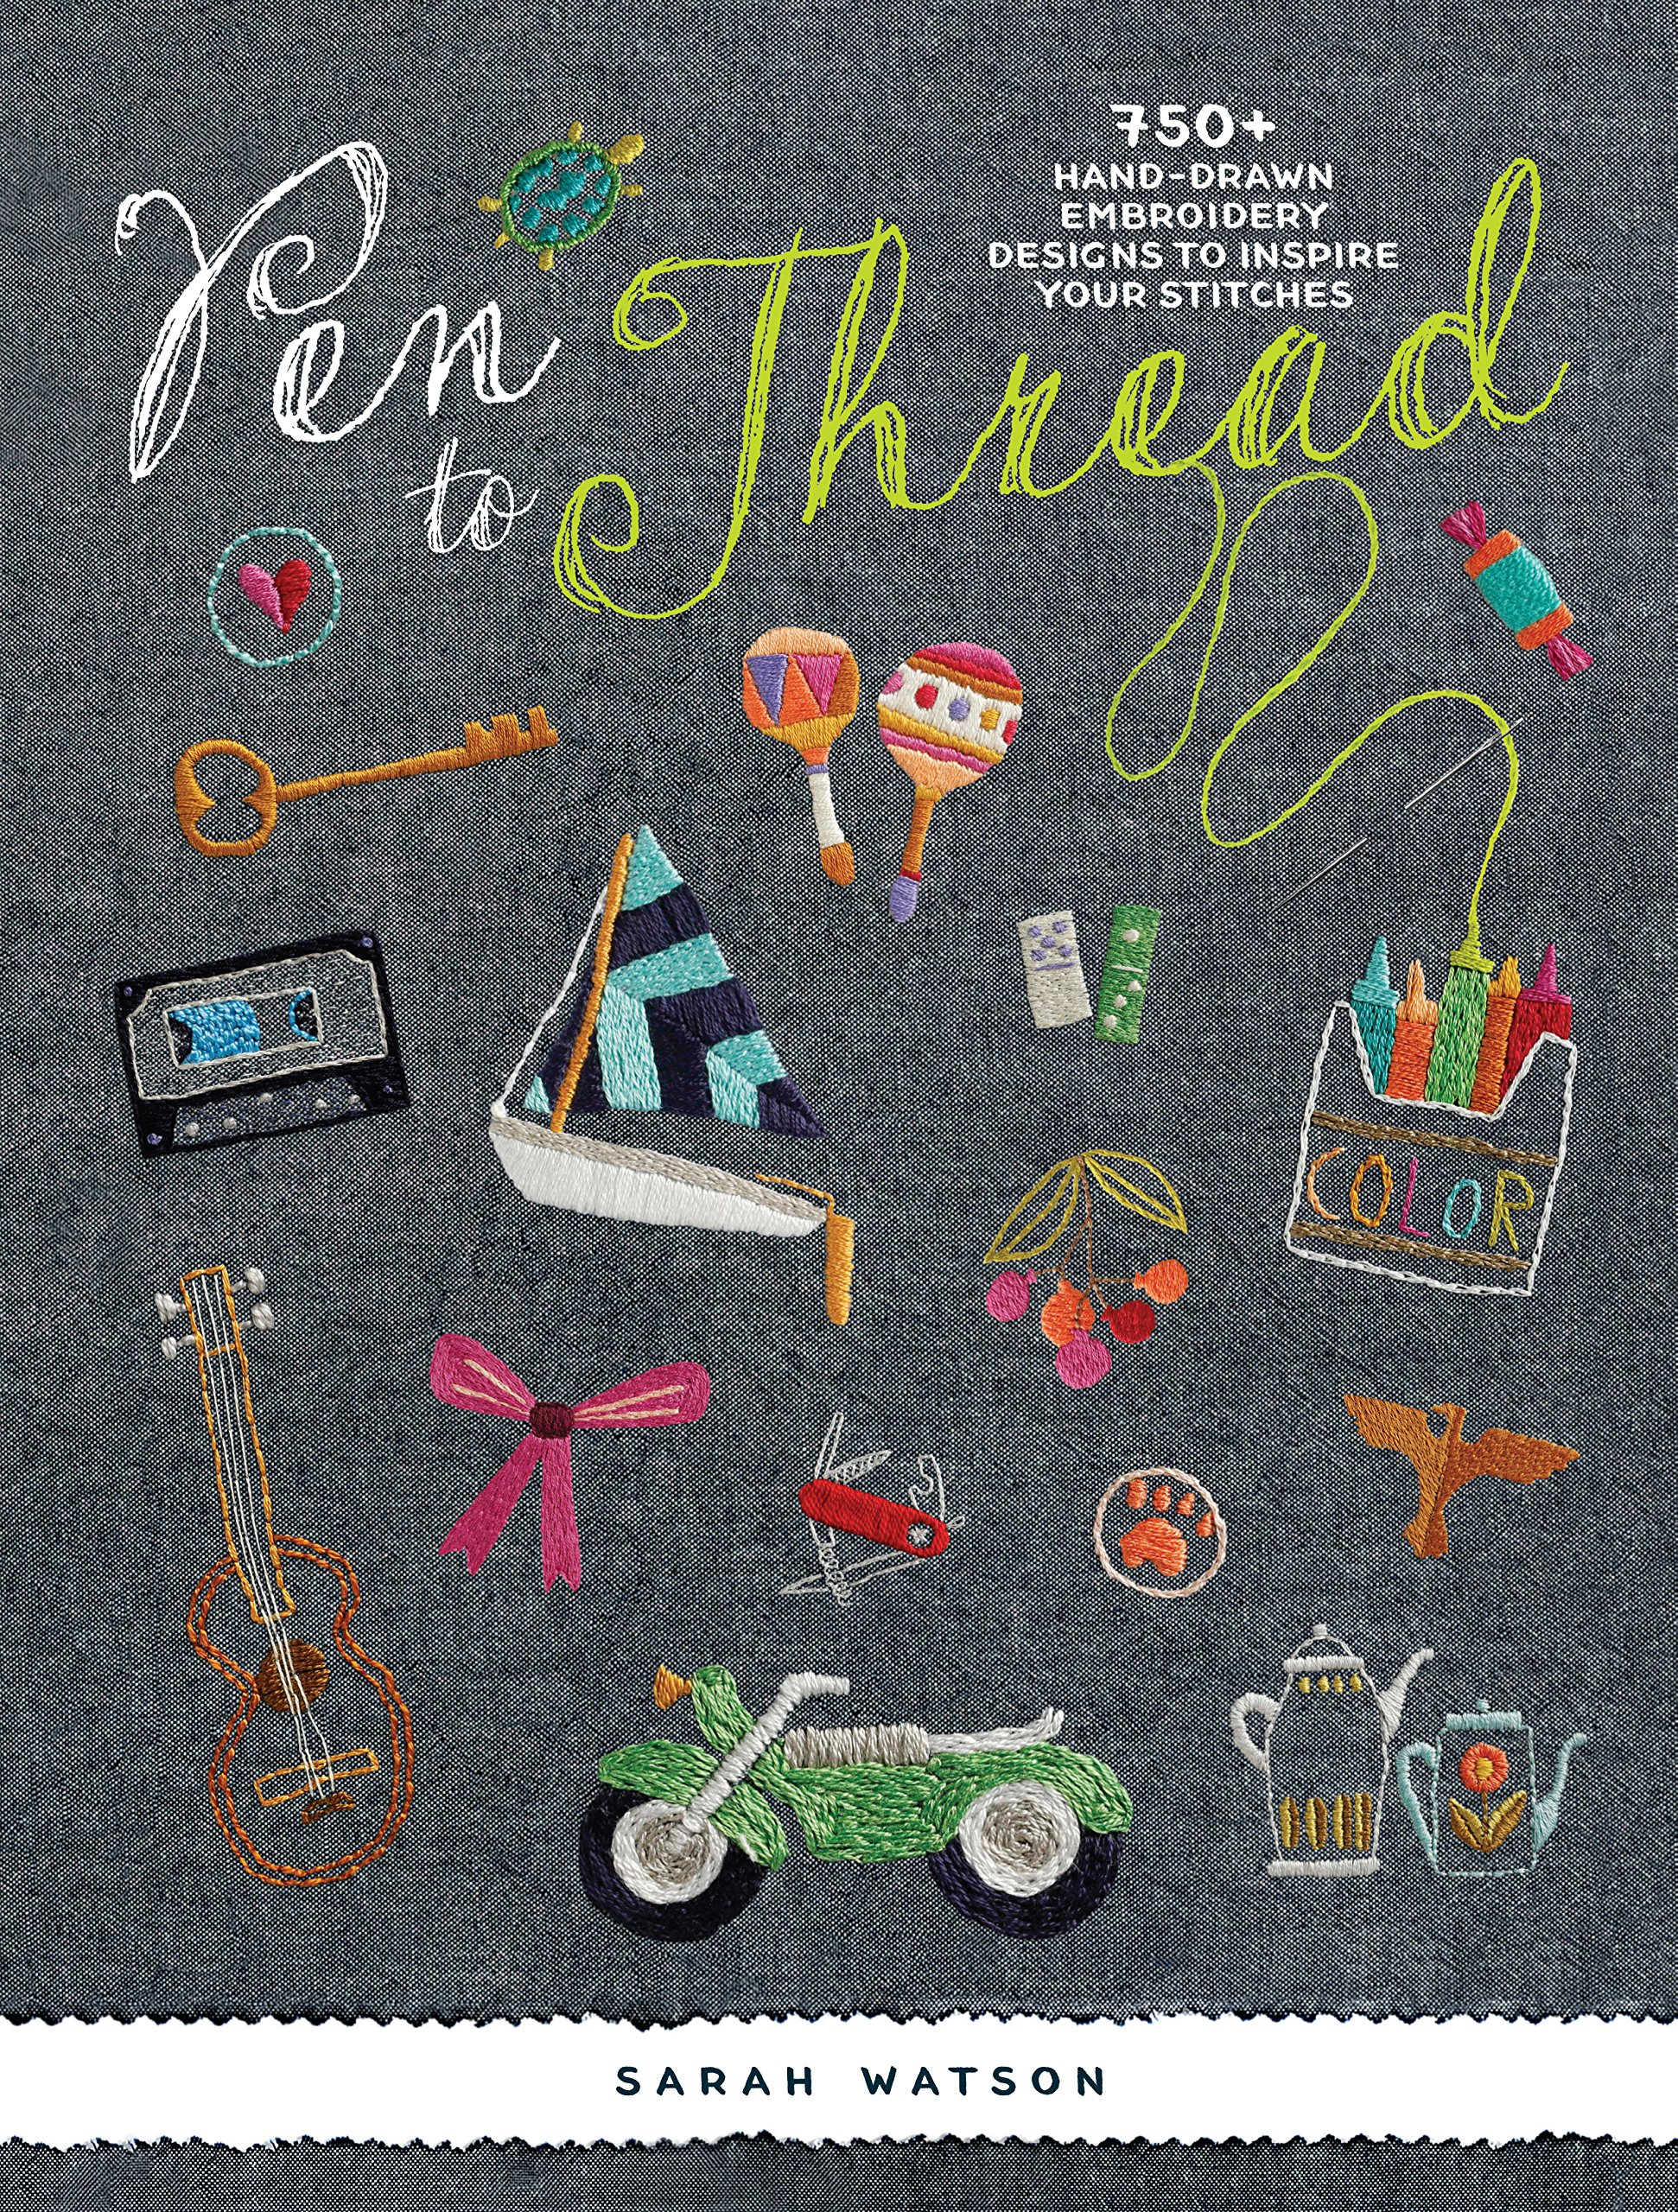 Pen To Thread 750 Hand Drawn Embroidery Designs To Inspire Your